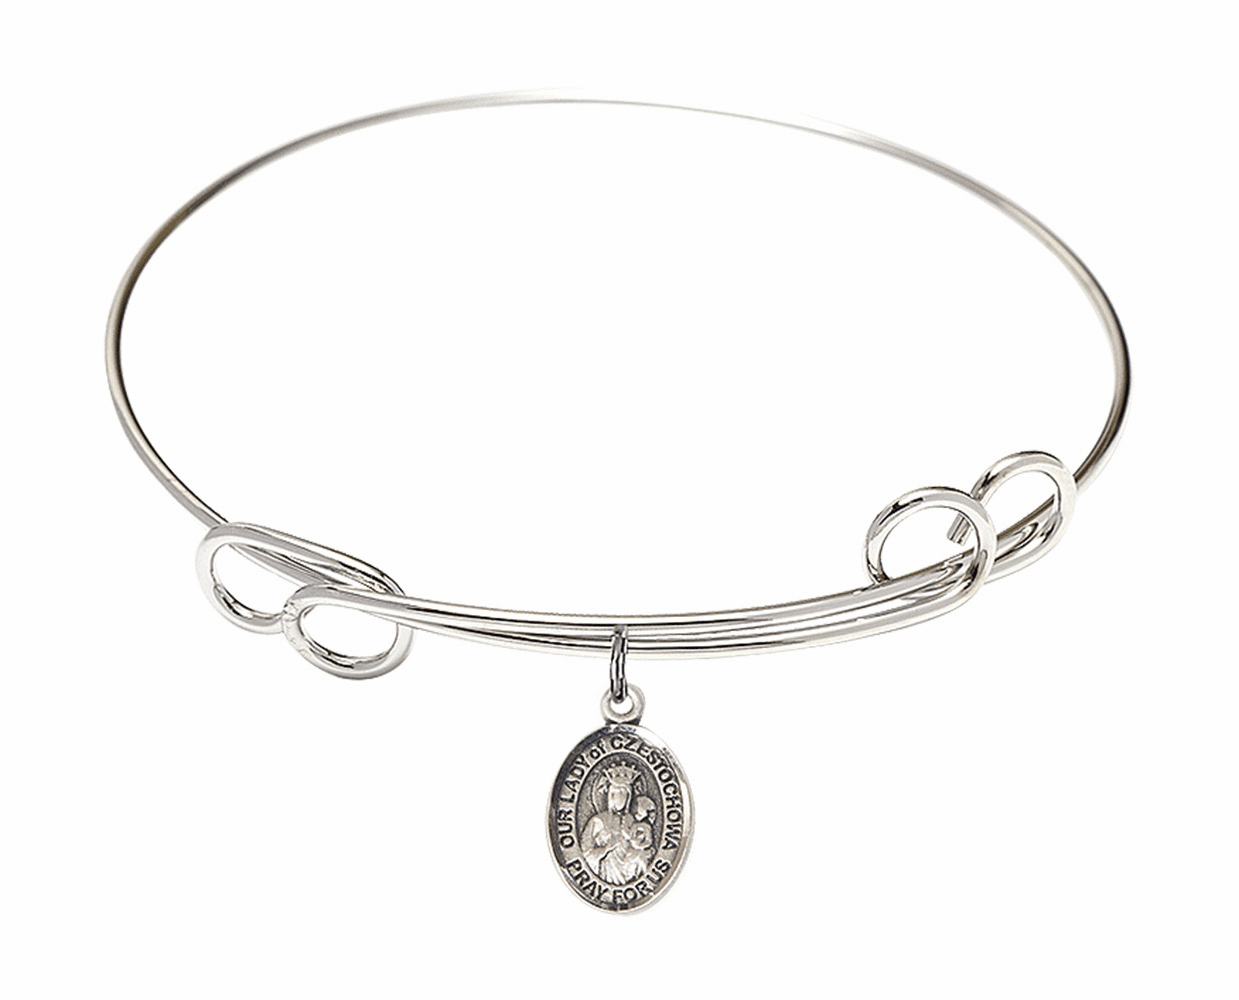 Round Loop Our Lady of Czestochowa Bangle Charm Bracelet by Bliss